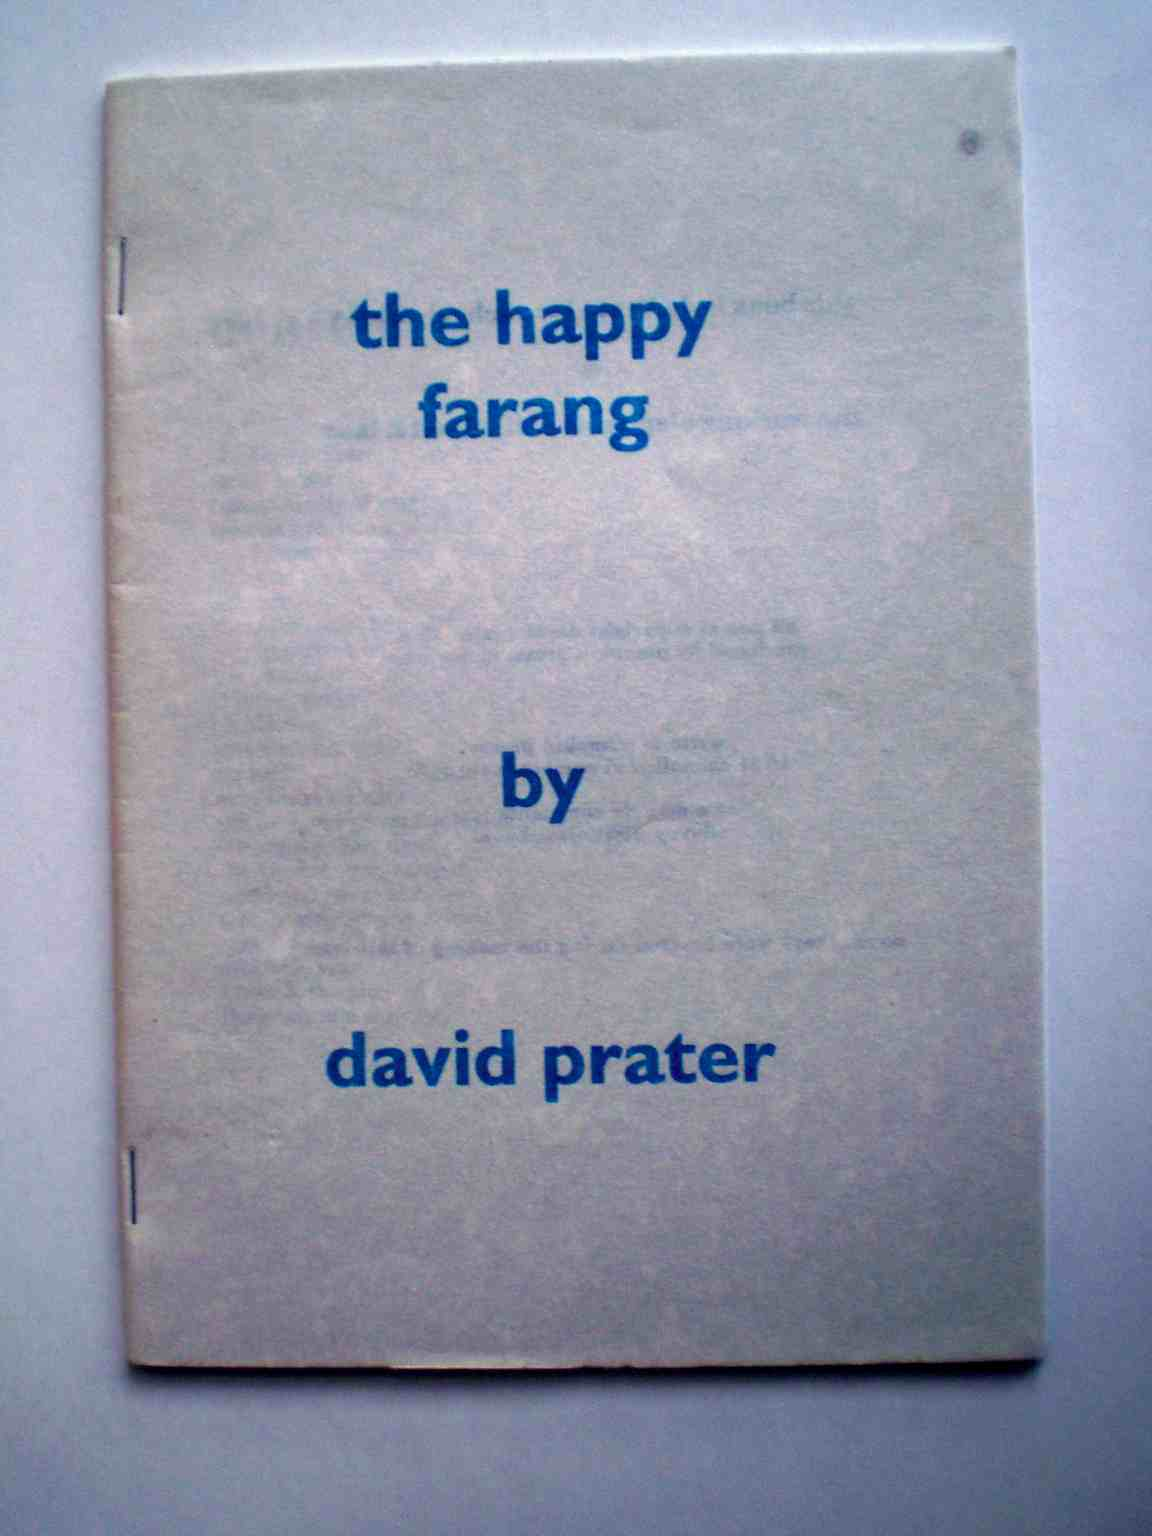 The Happy Farang, cover image.